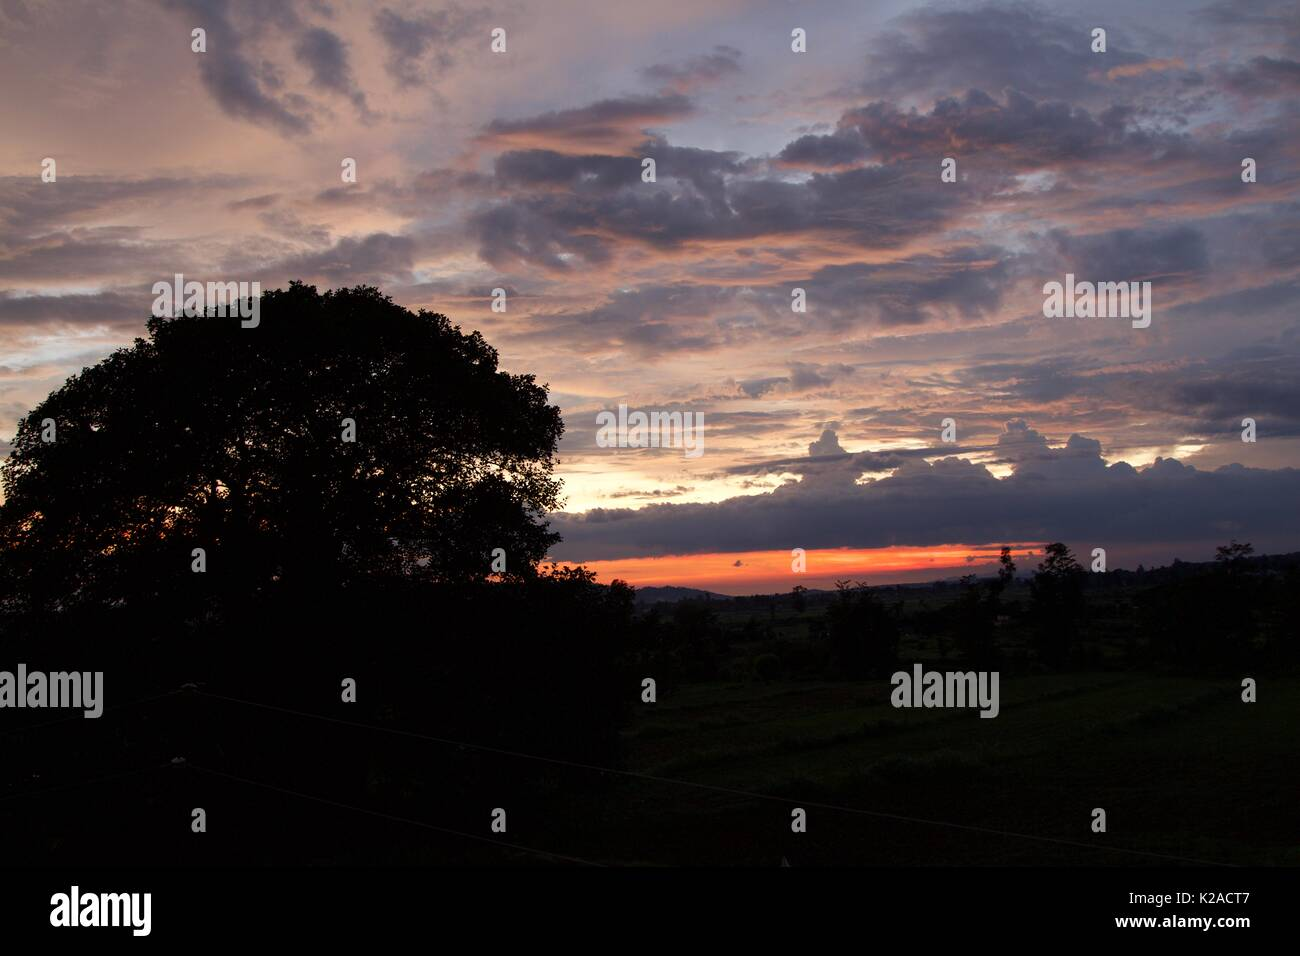 beautiful images captured of amber coloured evening sky with sunset and clouds Stock Photo